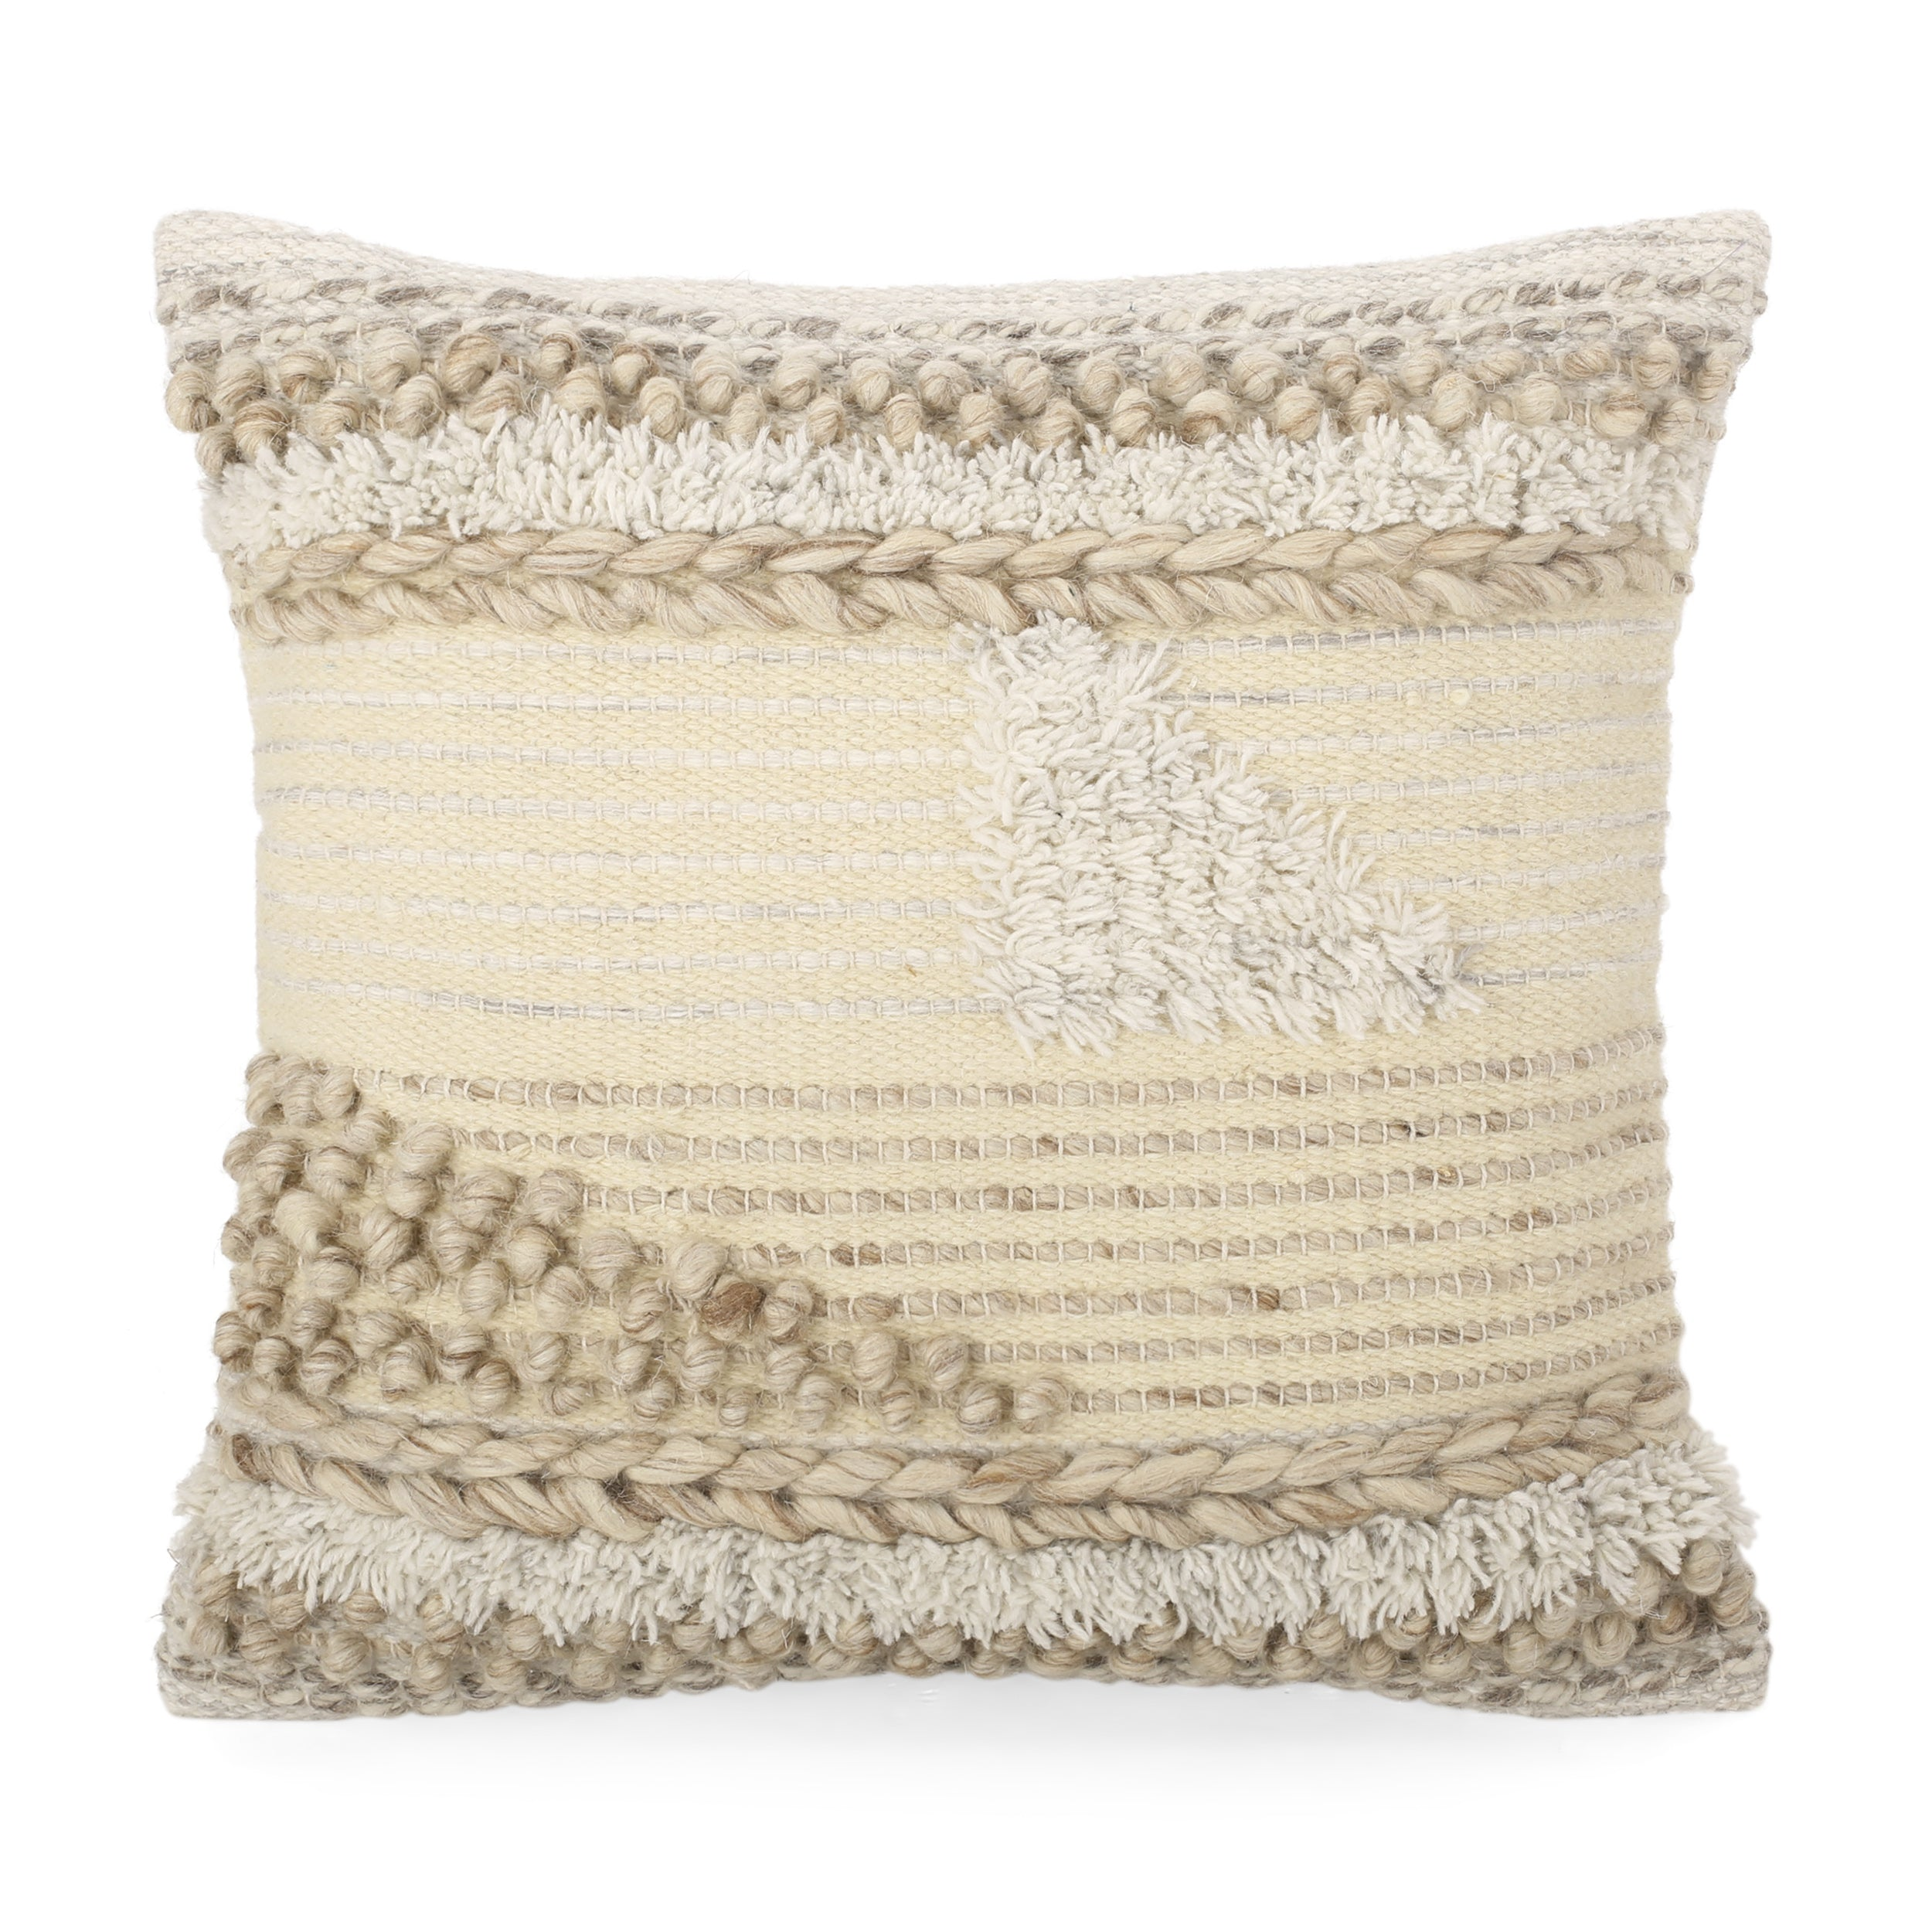 Afsheen Hand Loomed Boho Throw Pillow Multicolor